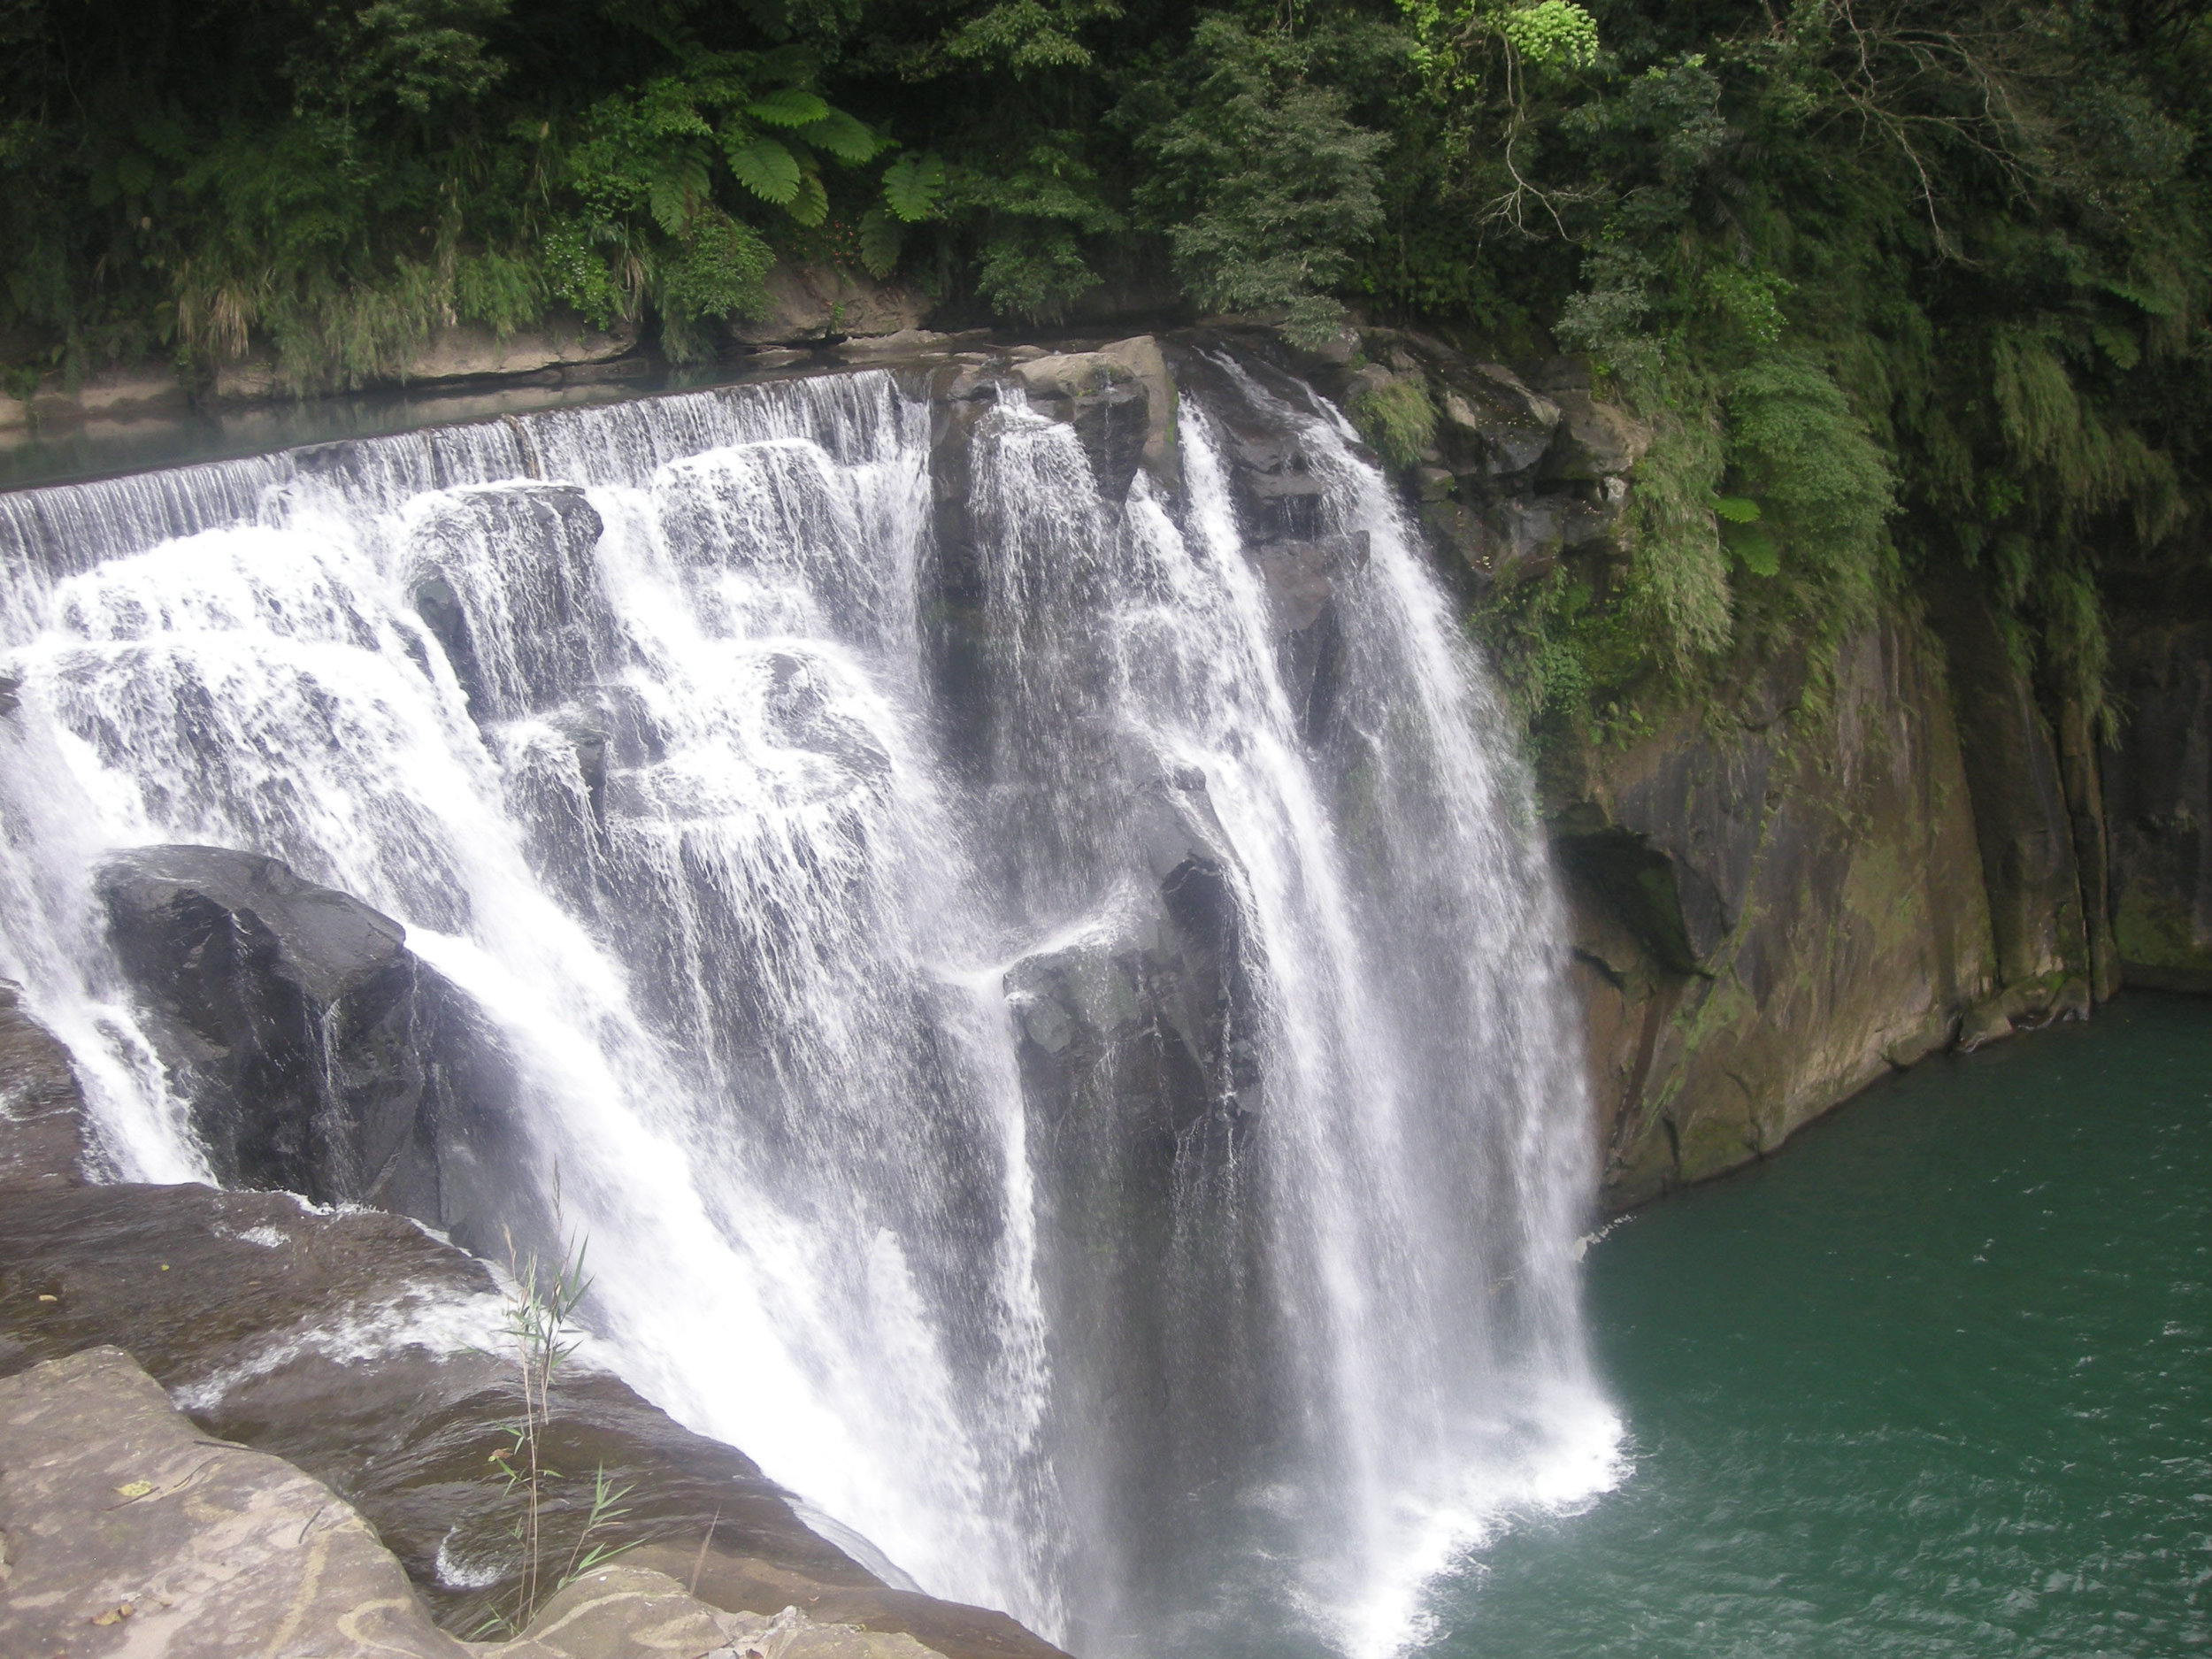 Eyeglasses waterfall 3.jpg